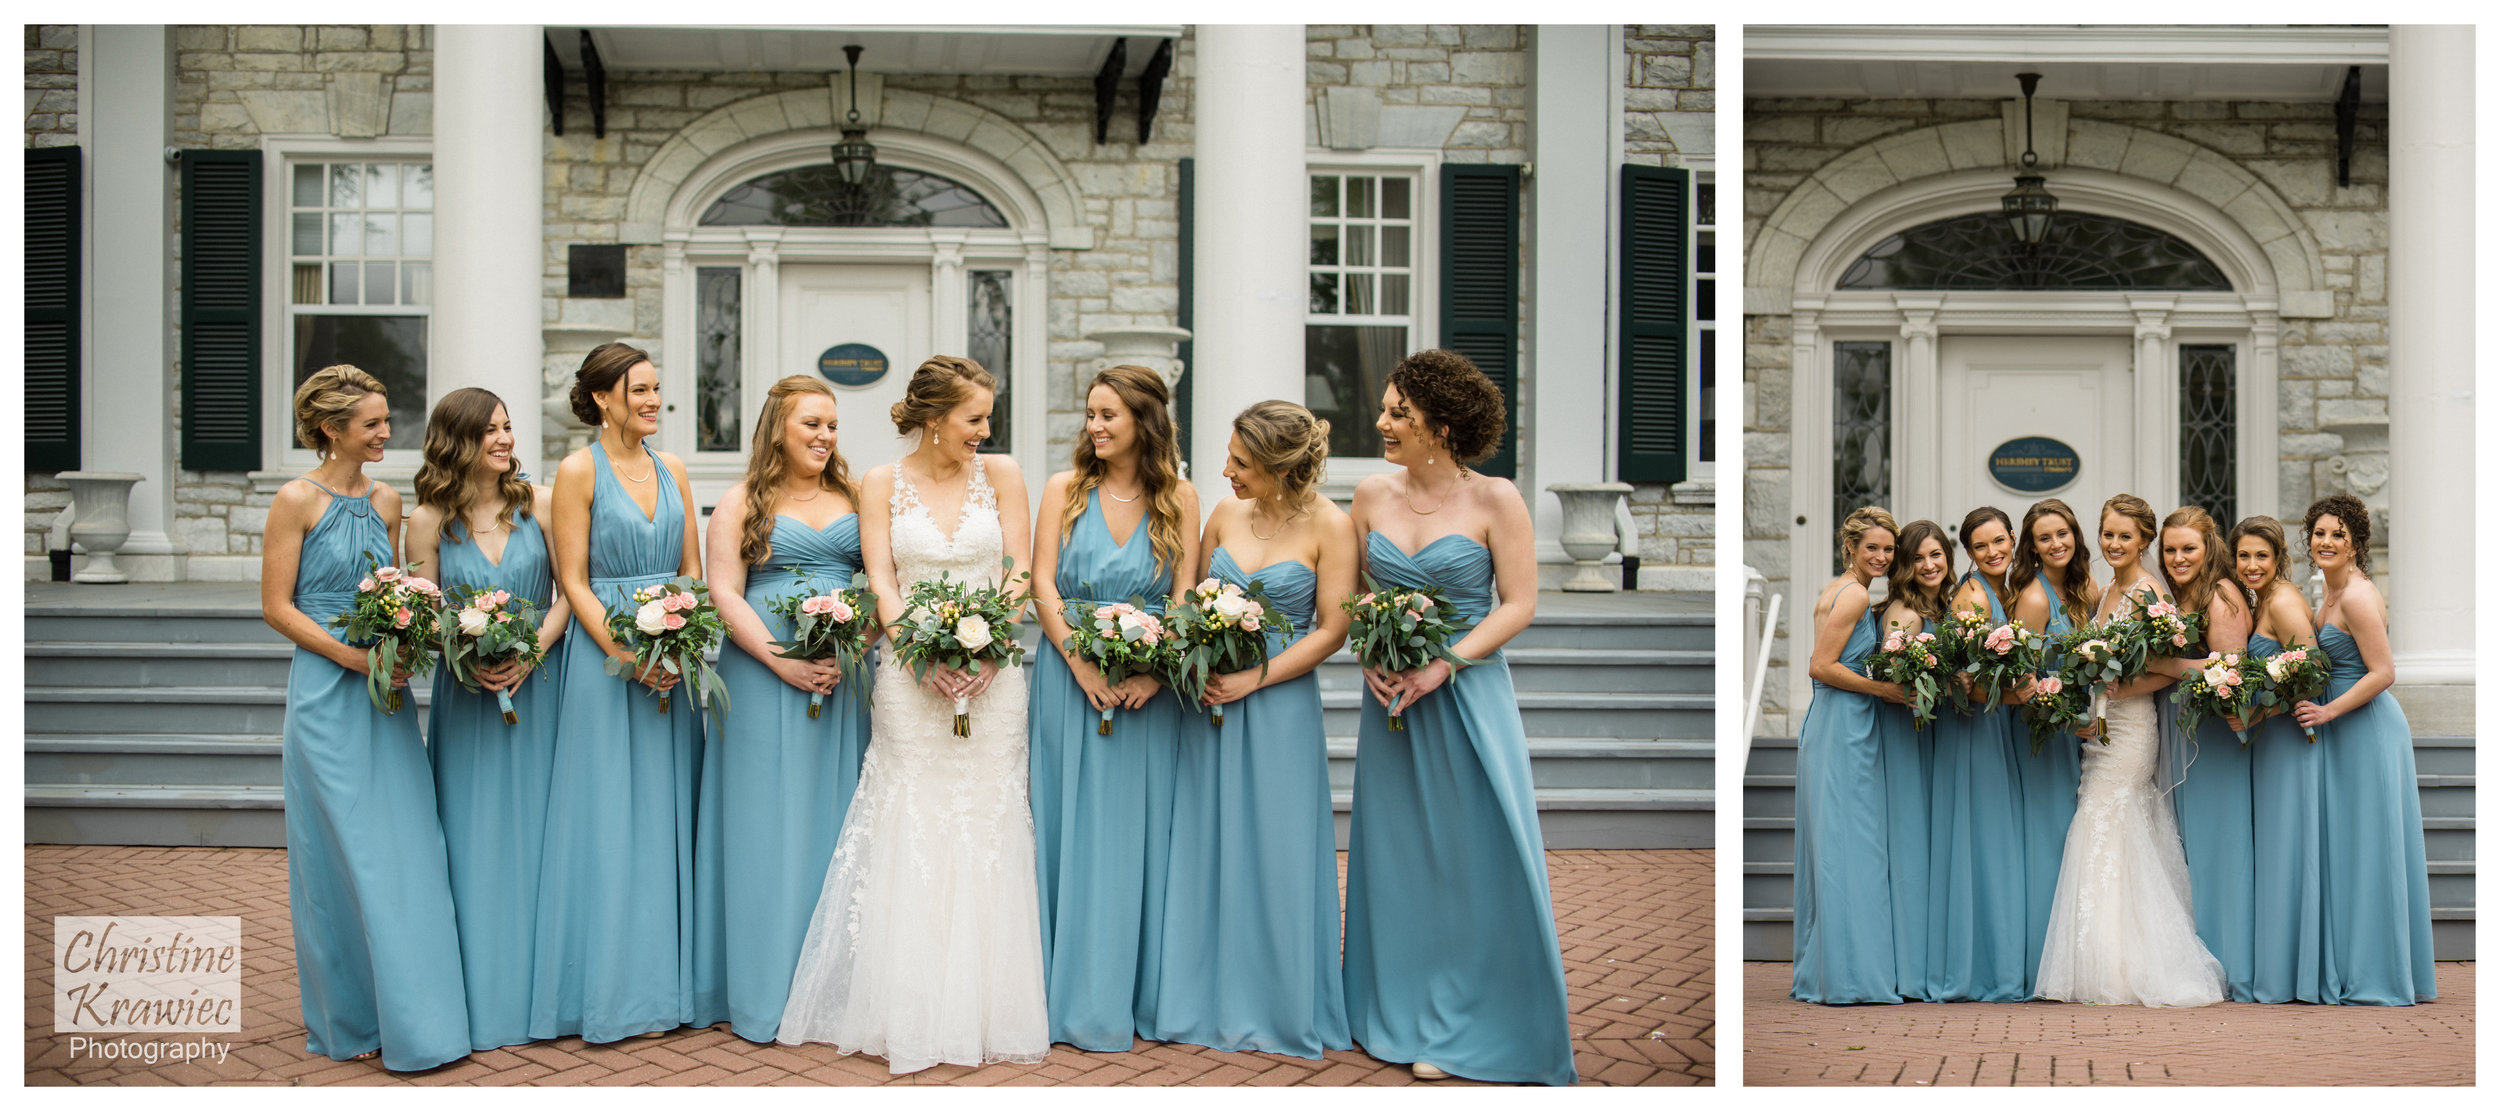 20 bridesmaids-hershey-country-club.jpg